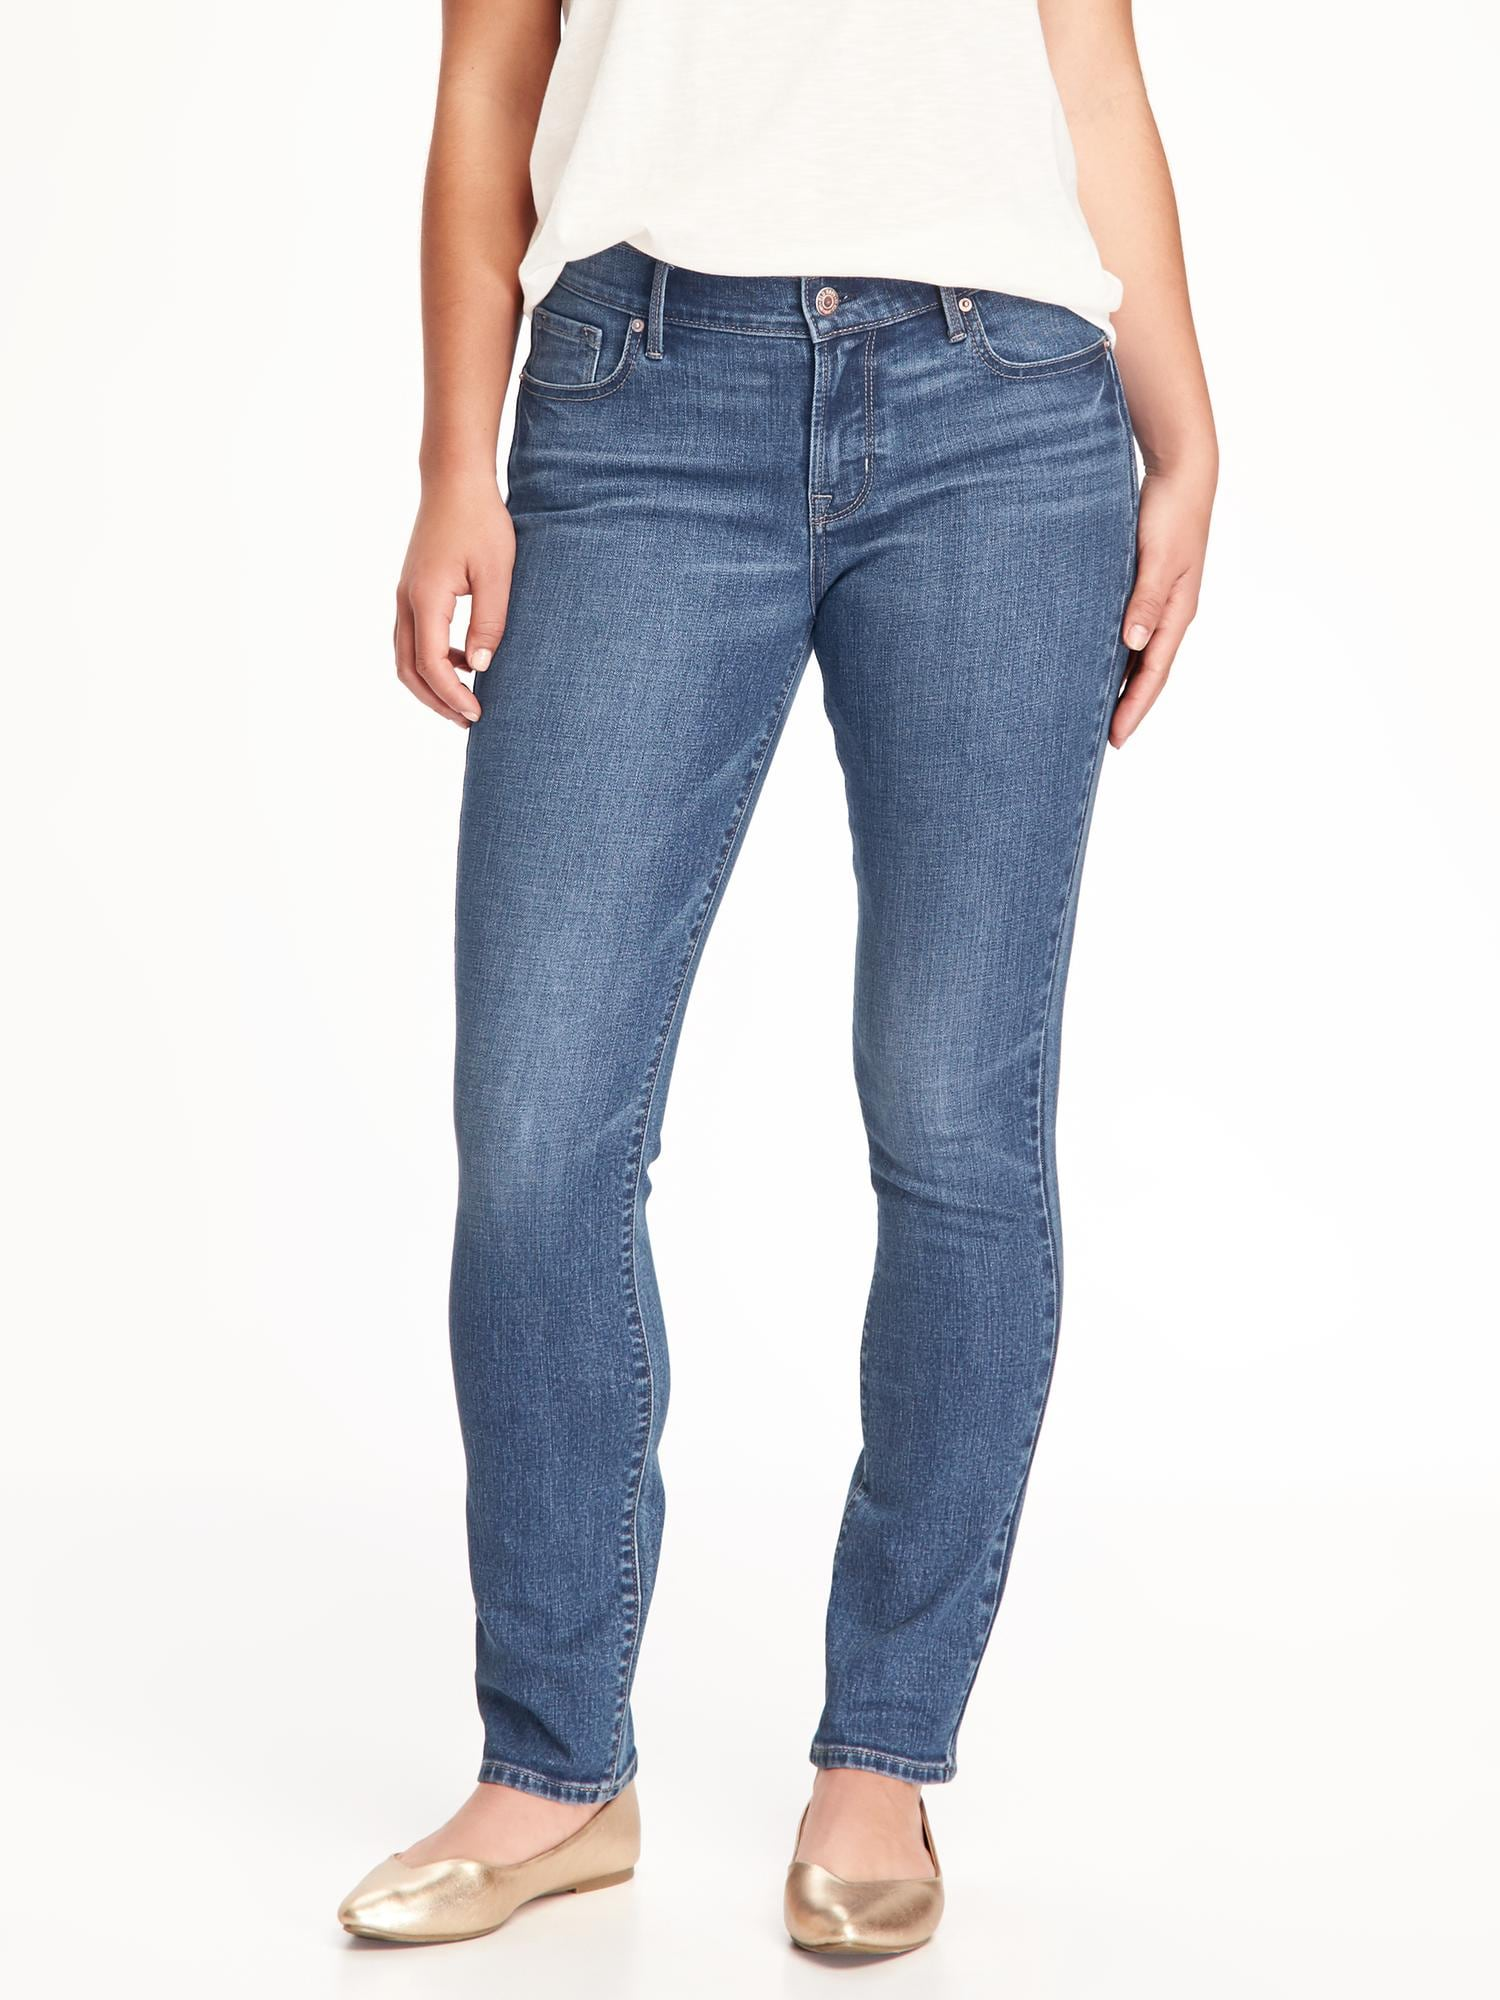 441b15fc66054 Mid-Rise Curvy Straight Jeans for Women